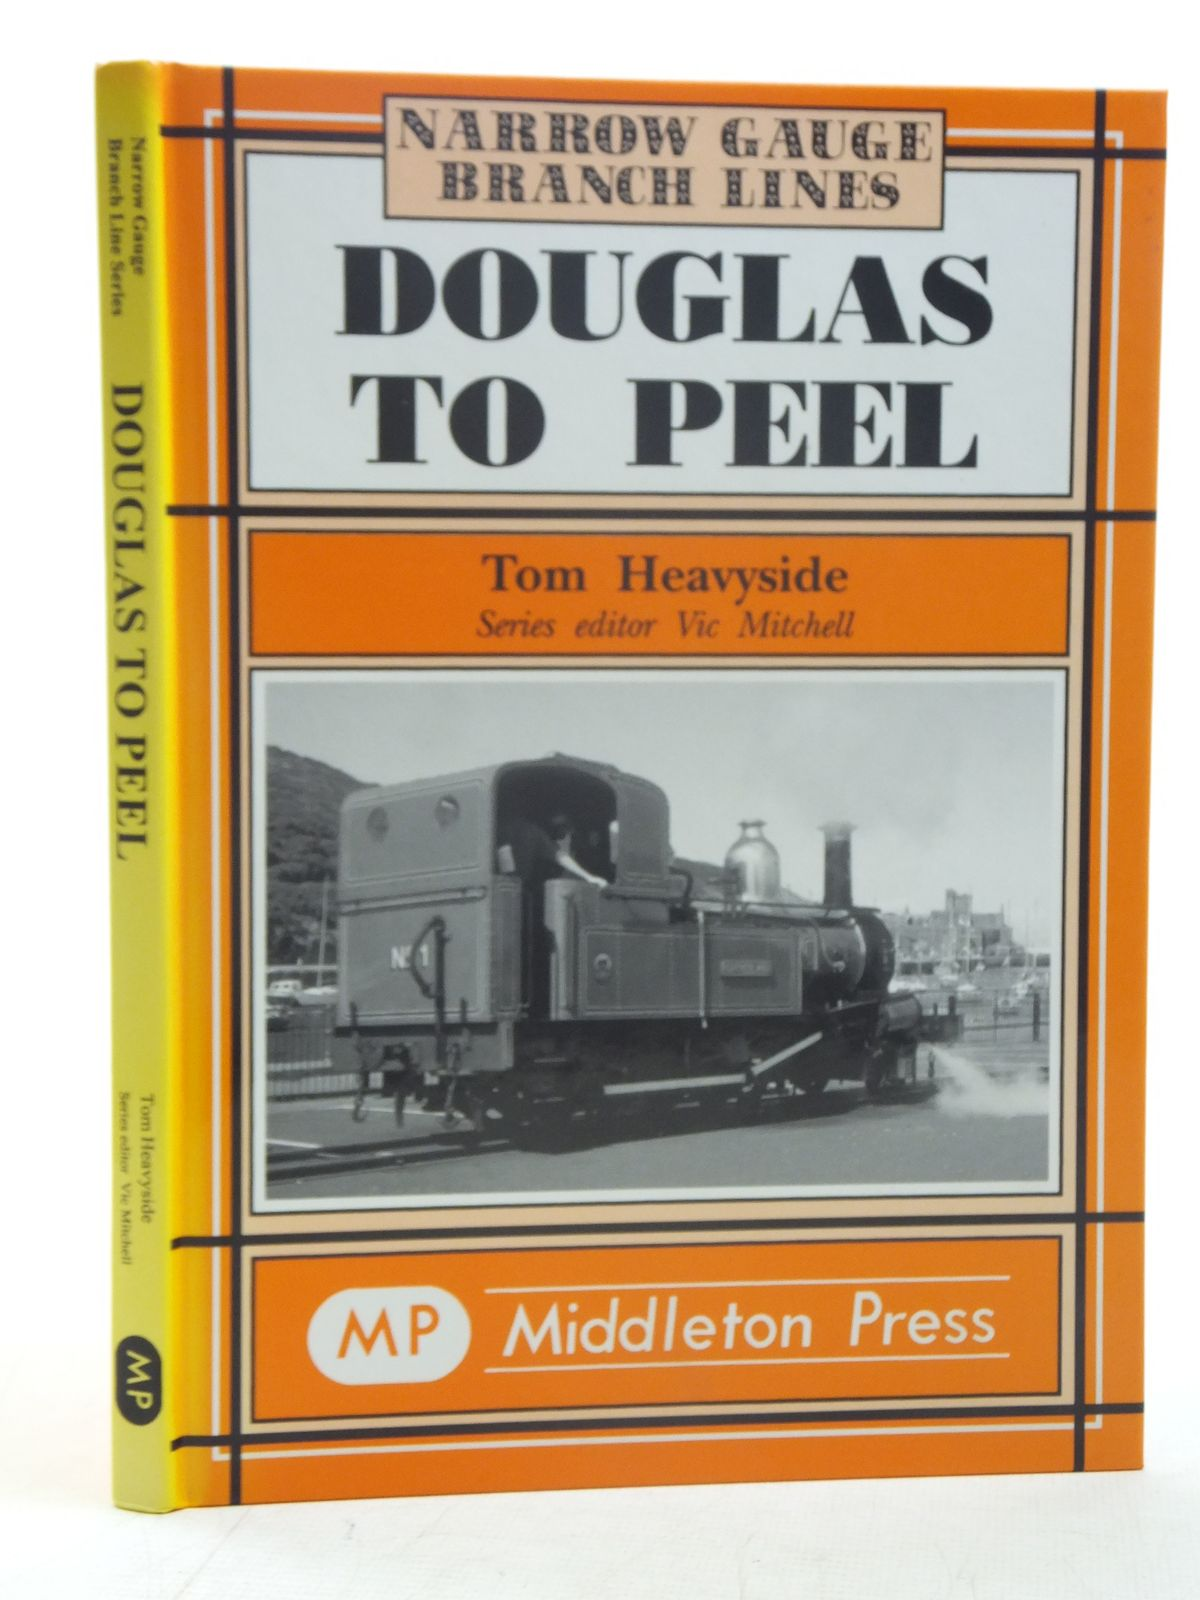 Photo of DOUGLAS TO PEEL (NARROW GAUGE BRANCH LINES) written by Heavyside, Tom published by Middleton Press (STOCK CODE: 1606972)  for sale by Stella & Rose's Books